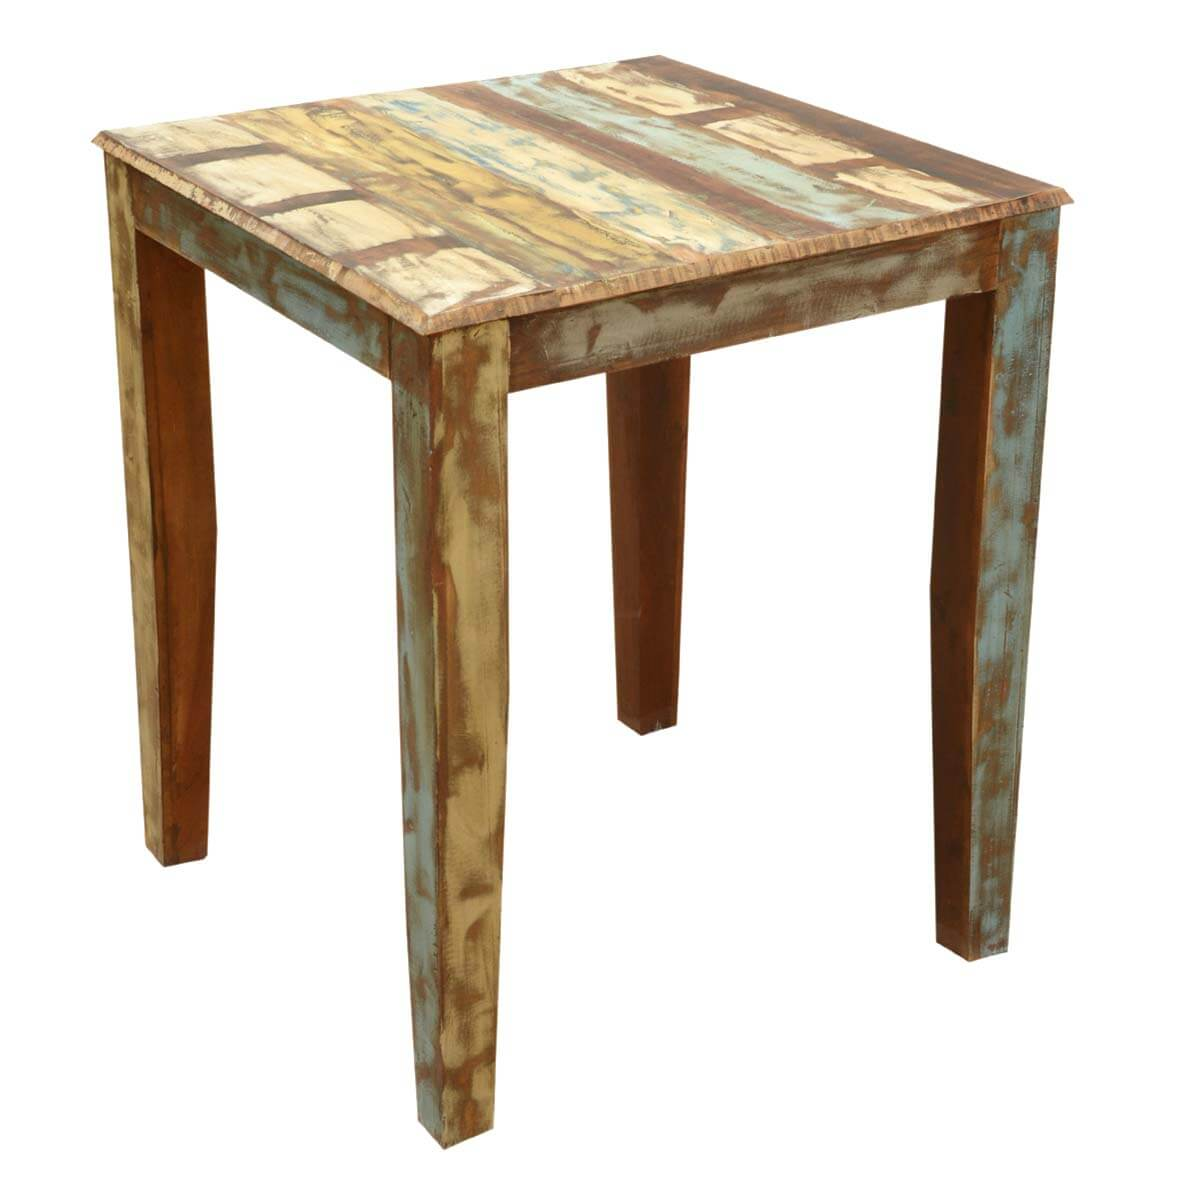 Wood Bistro Table And Chairs ~ Appalachian rustic reclaimed wood high bar table chair set